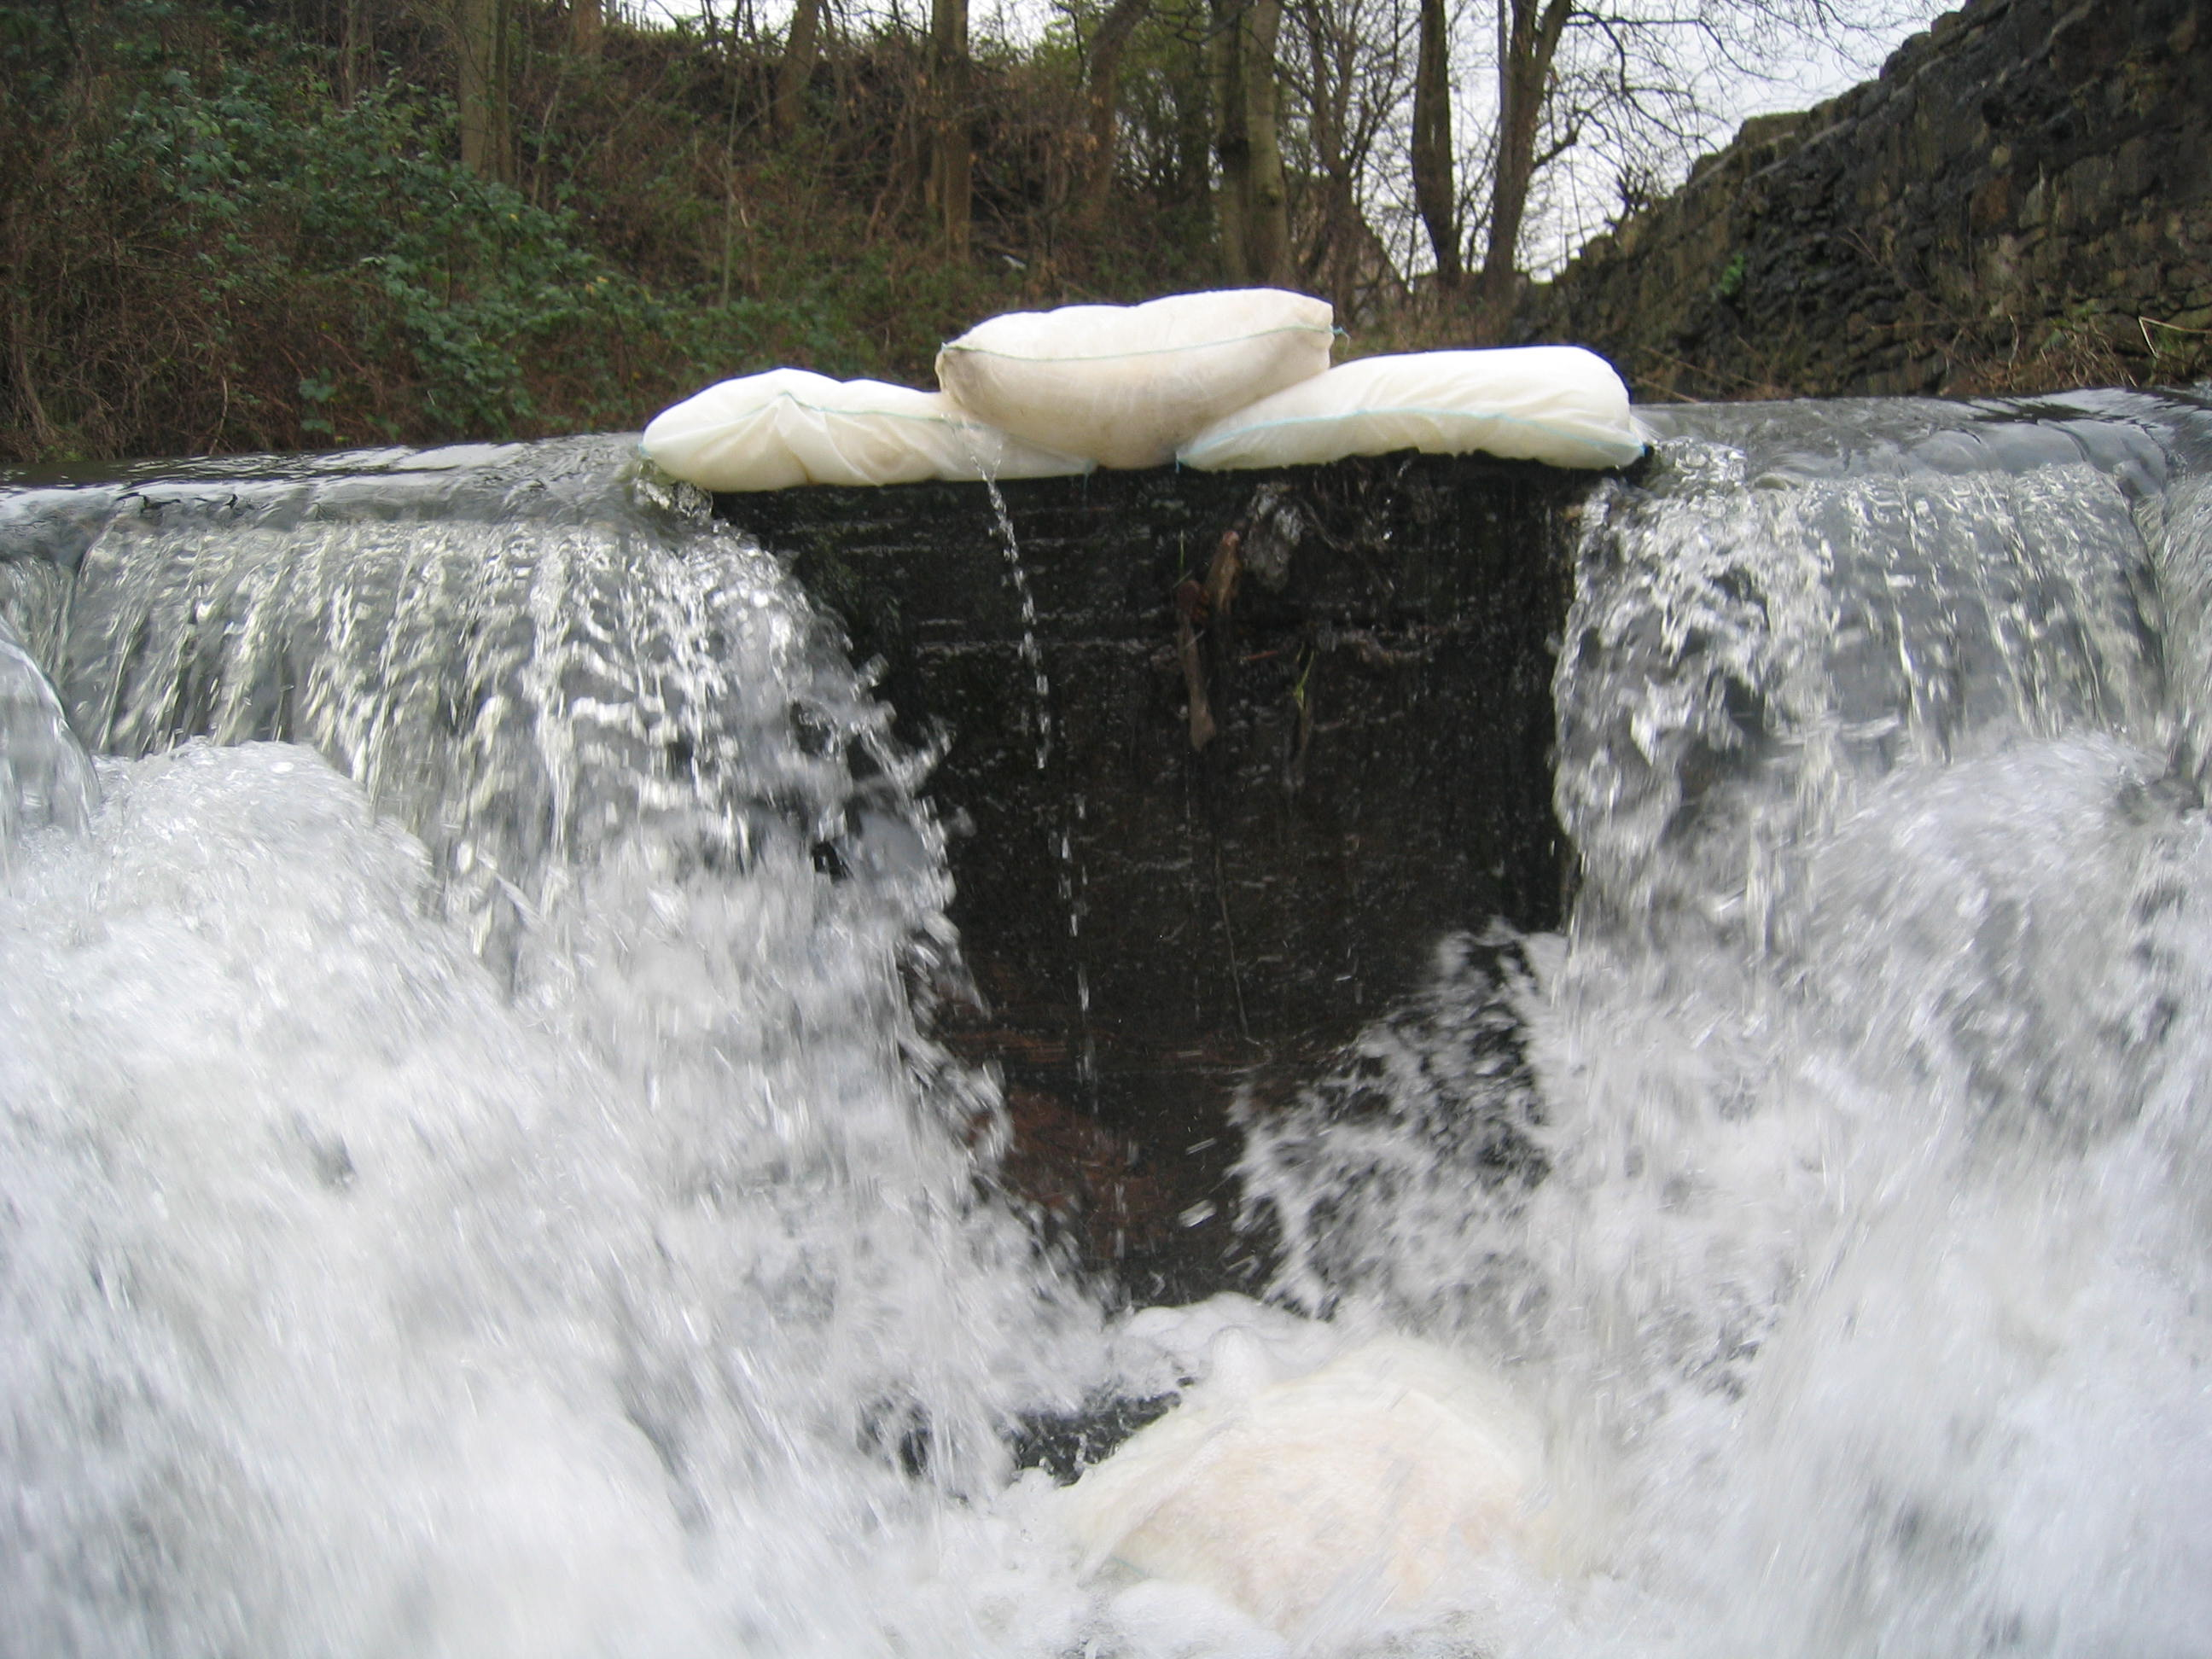 FloodSax stopping waterfall 9.jpg